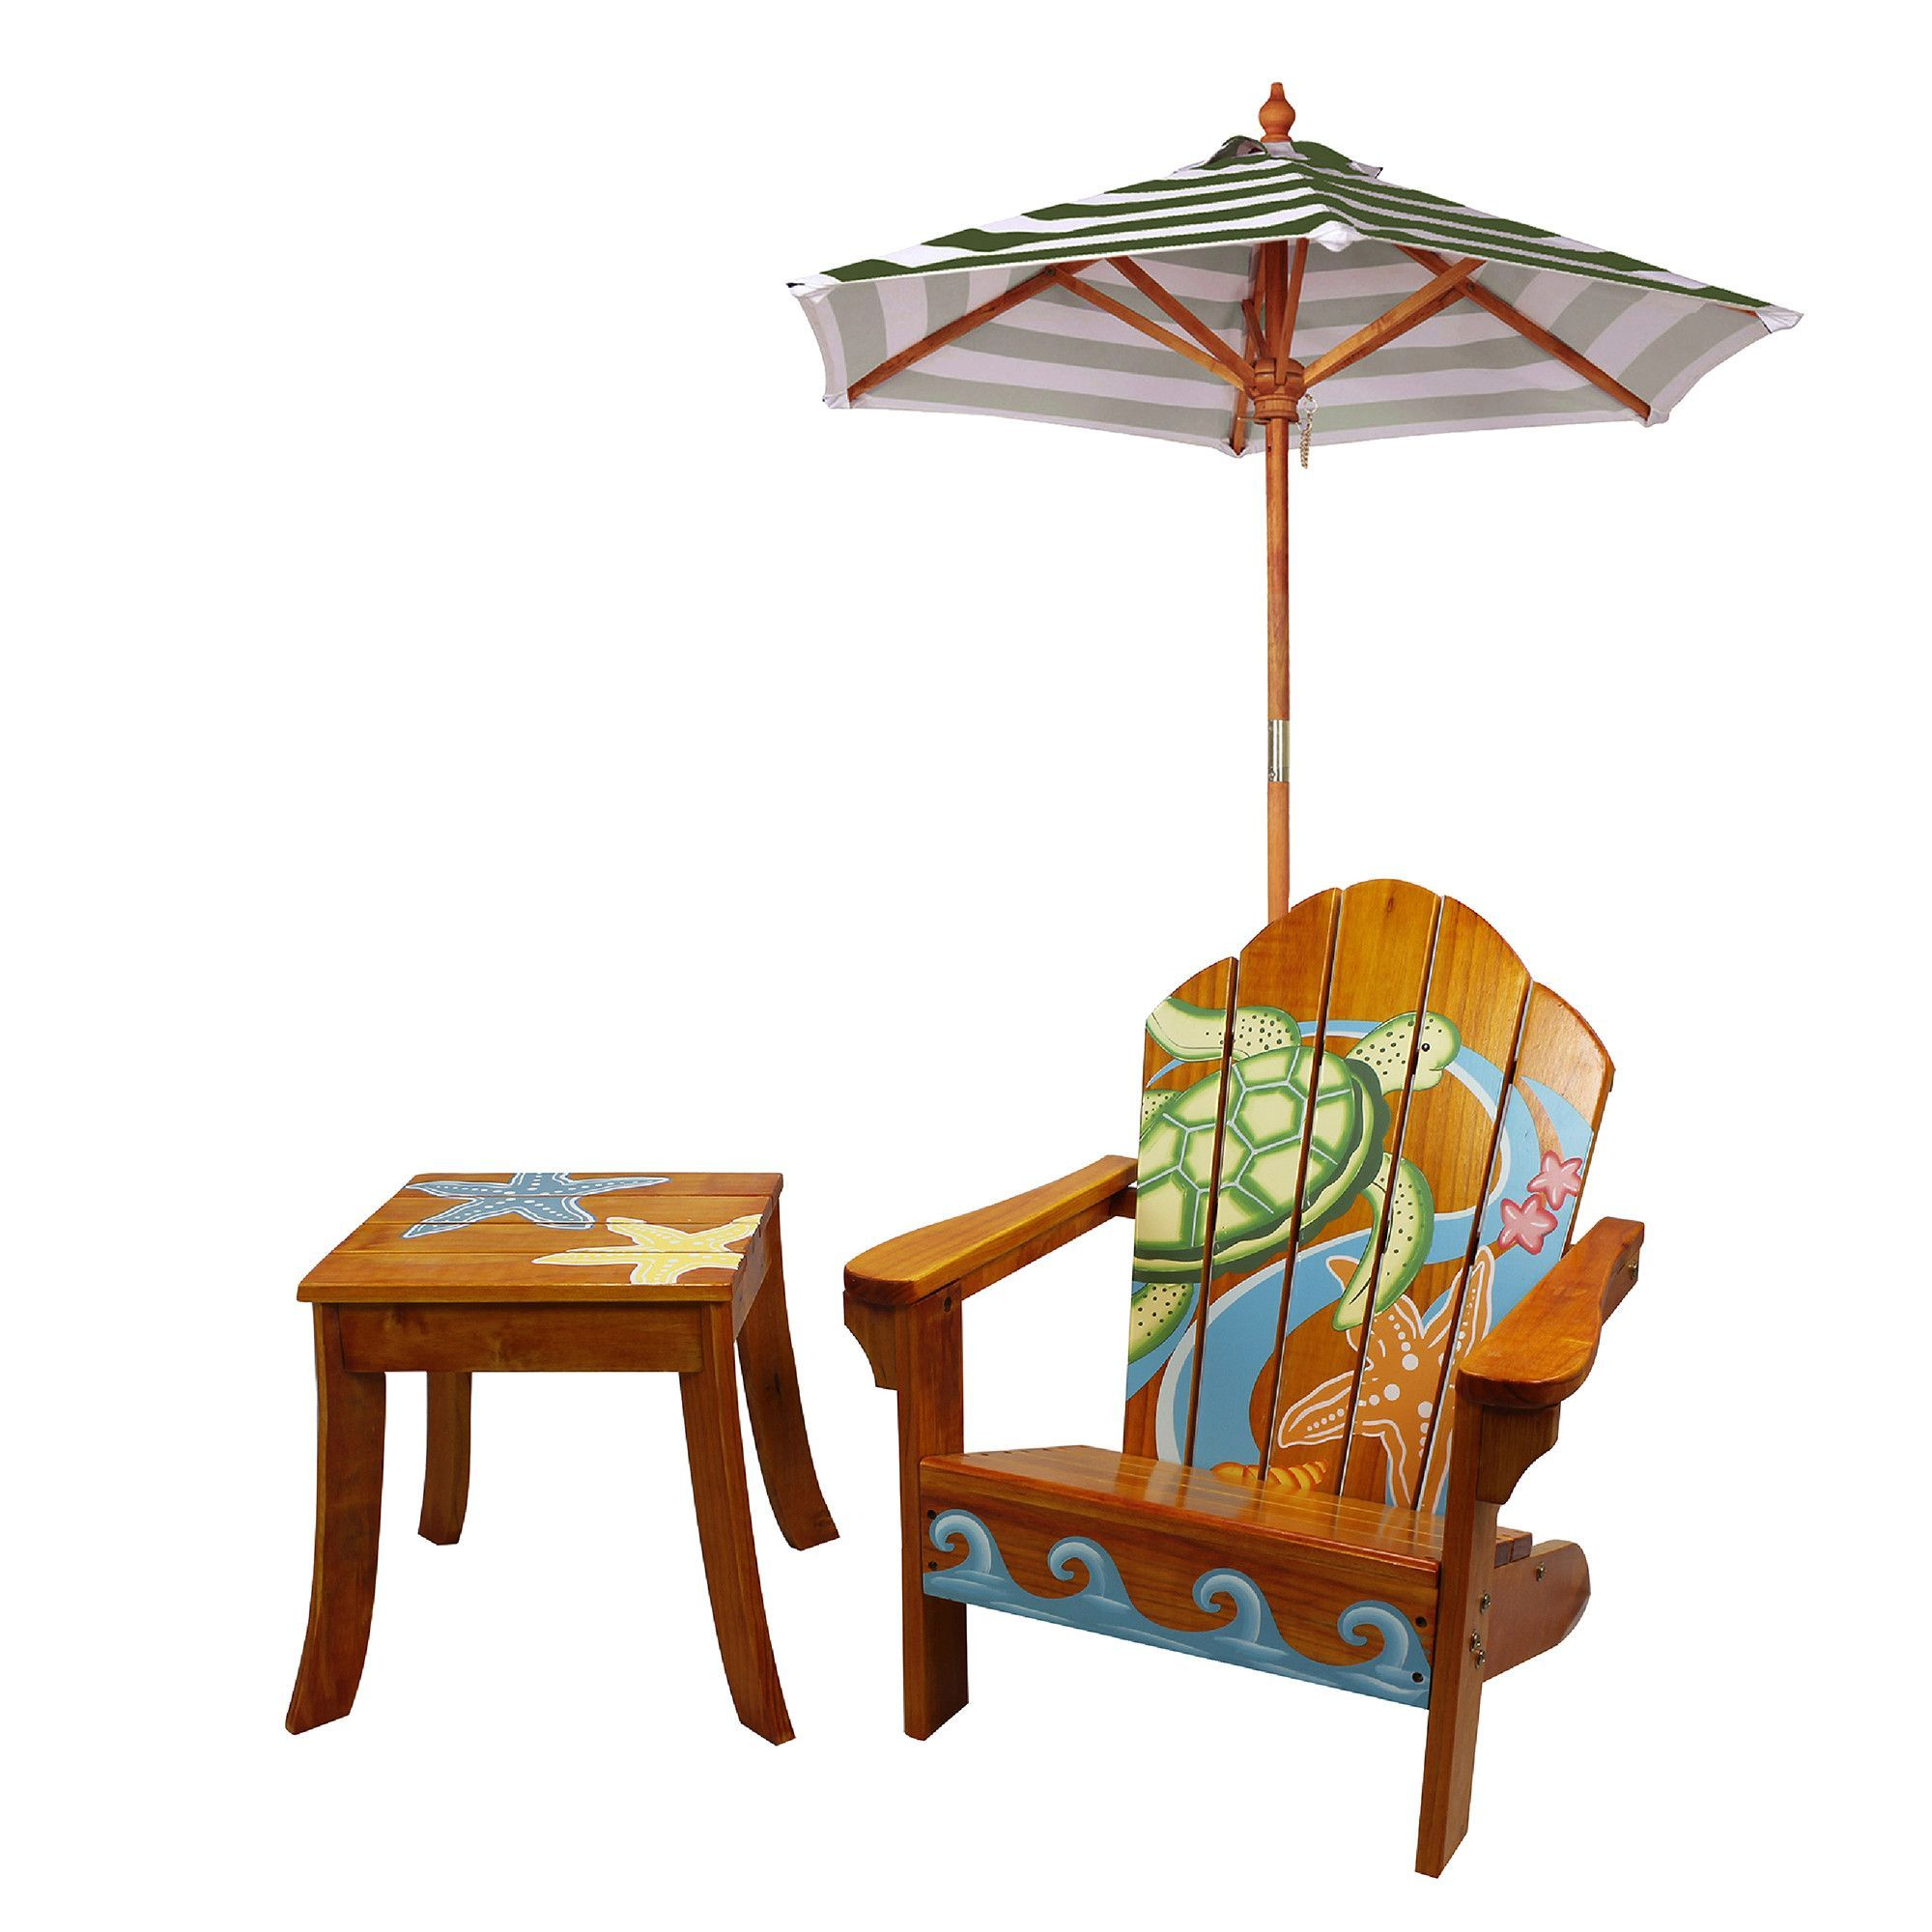 Winland Sea Turtle Outdoor Wood Table & Chair Set in